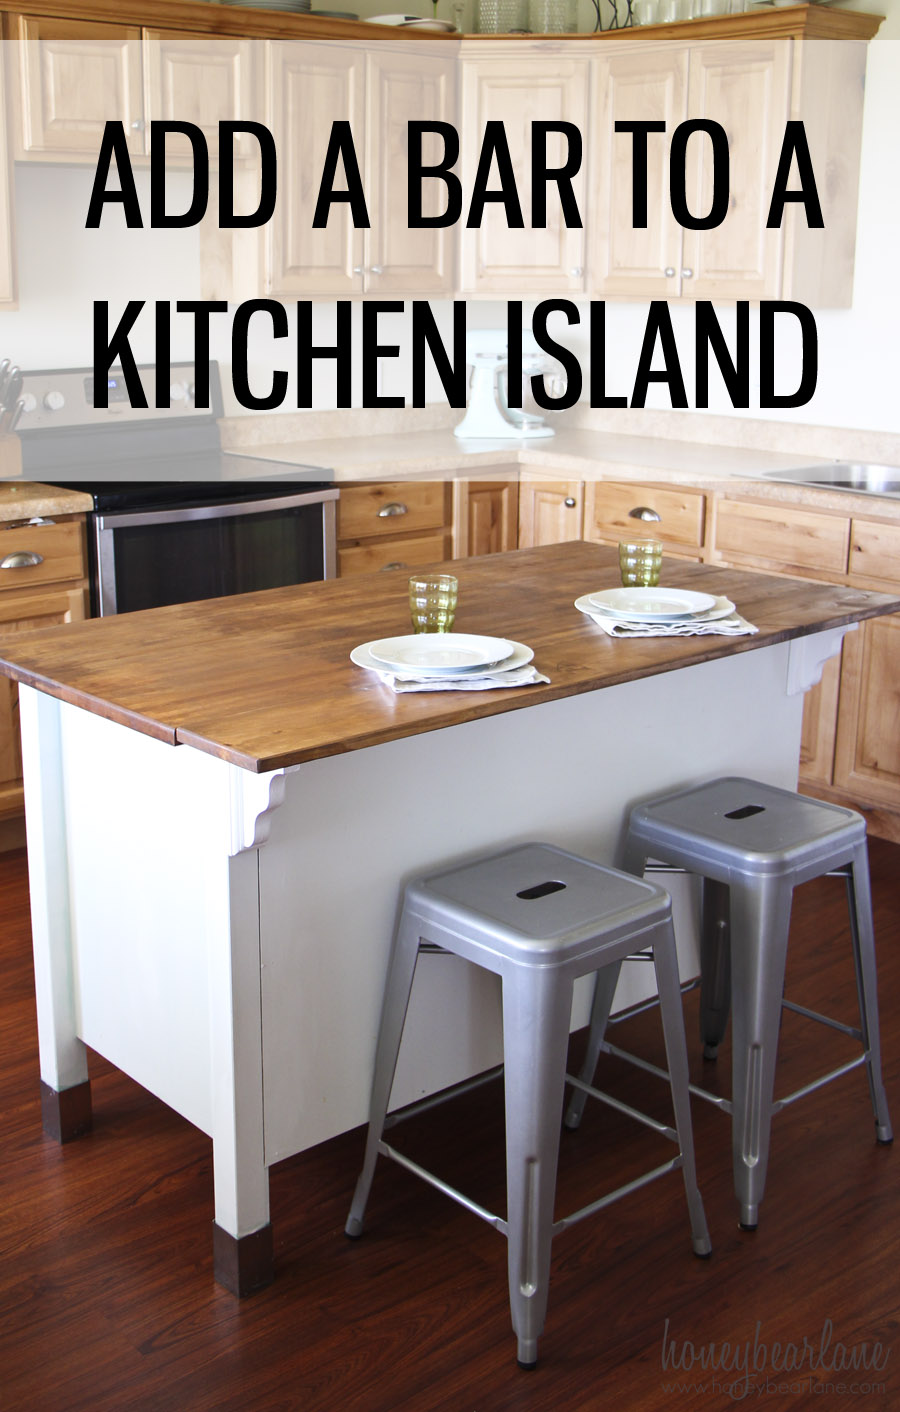 Kitchen Island Overhang For Stools